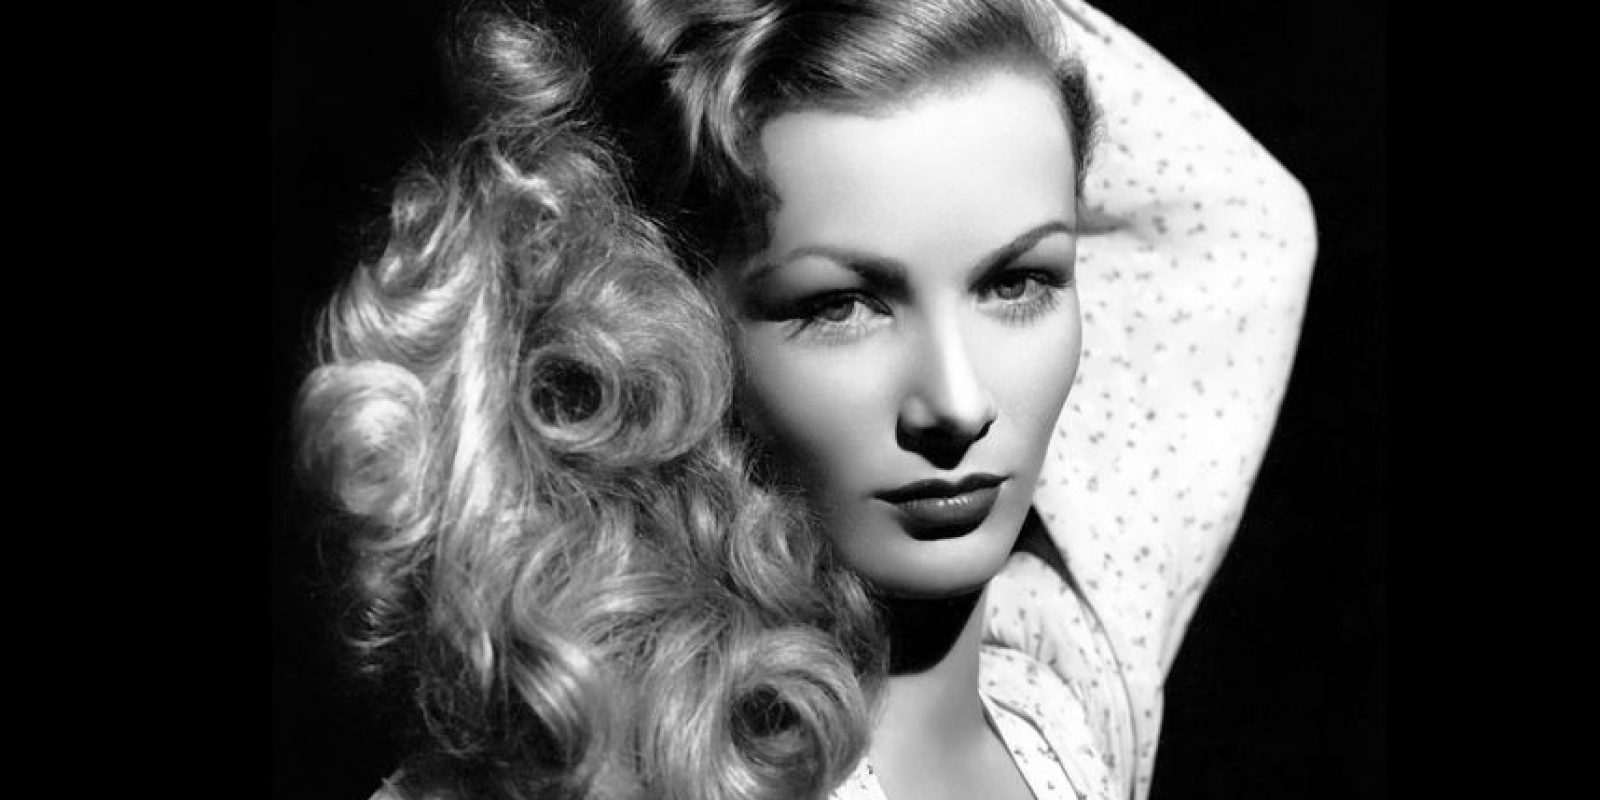 Veronica Lake, leyenda de Hollywood, destruyó su carrera por problemas con el alcohol y comportamiento. Foto: vía Getty Images